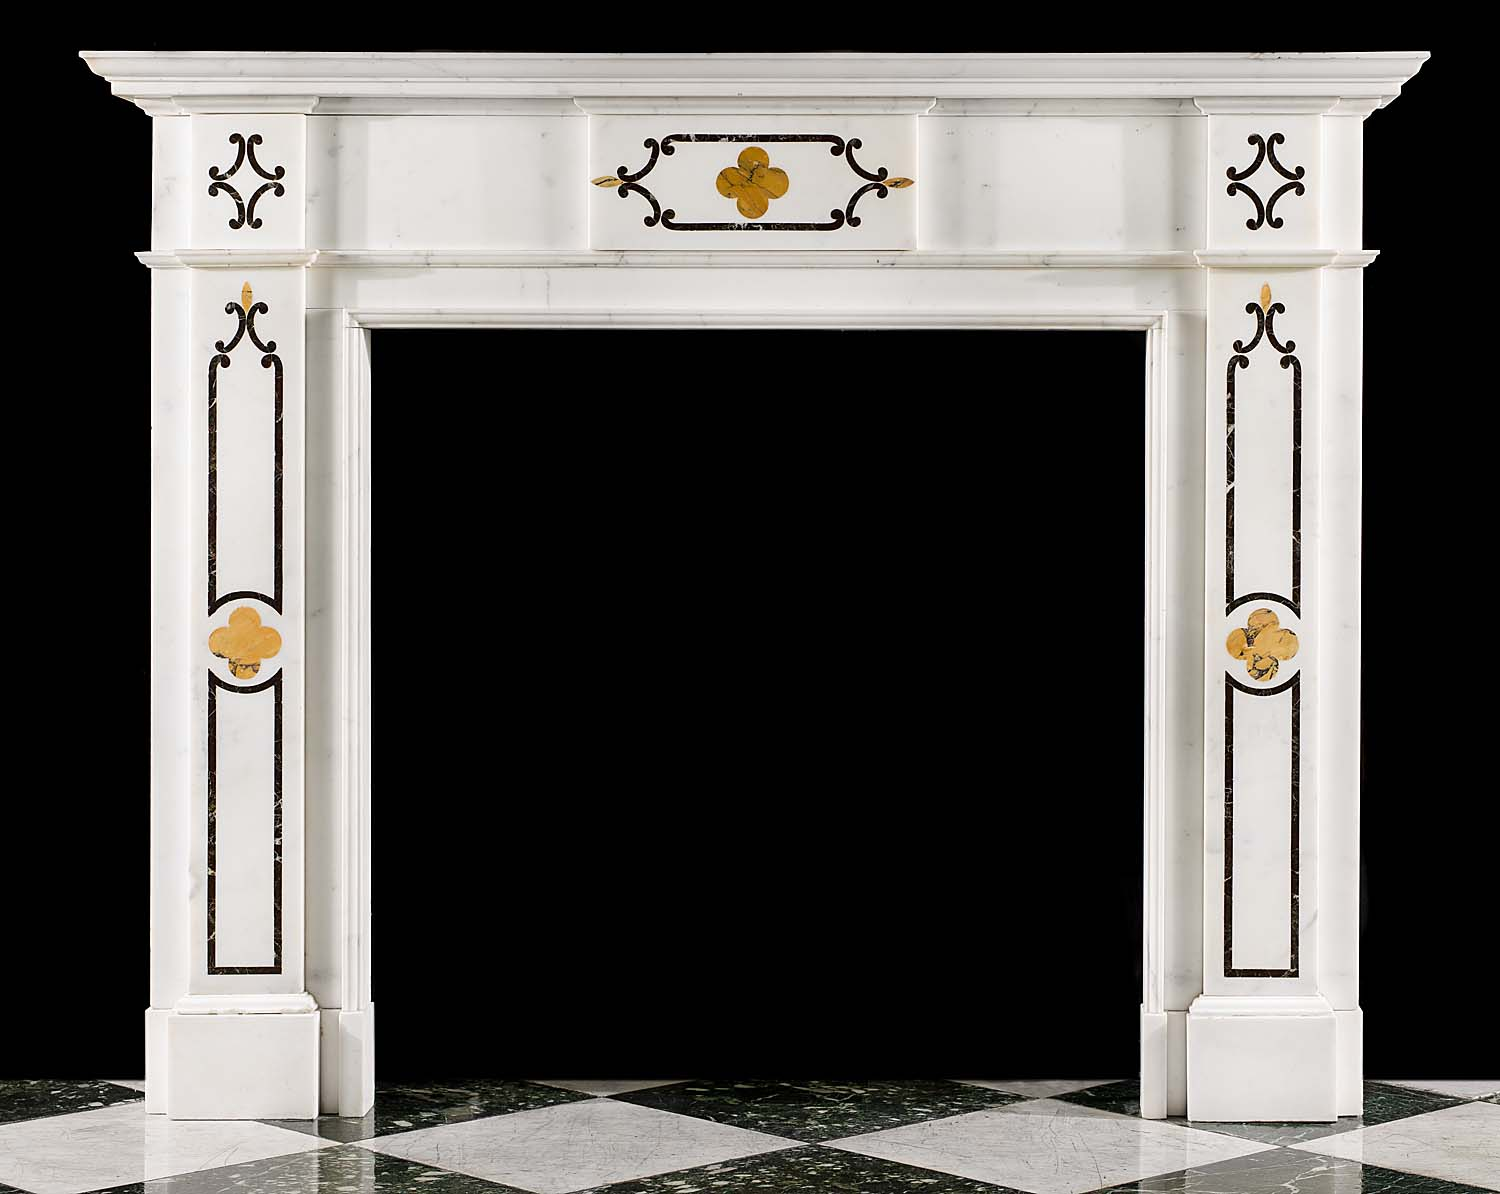 A Victorian marble inlaid fireplace in the Gothic Revival manner